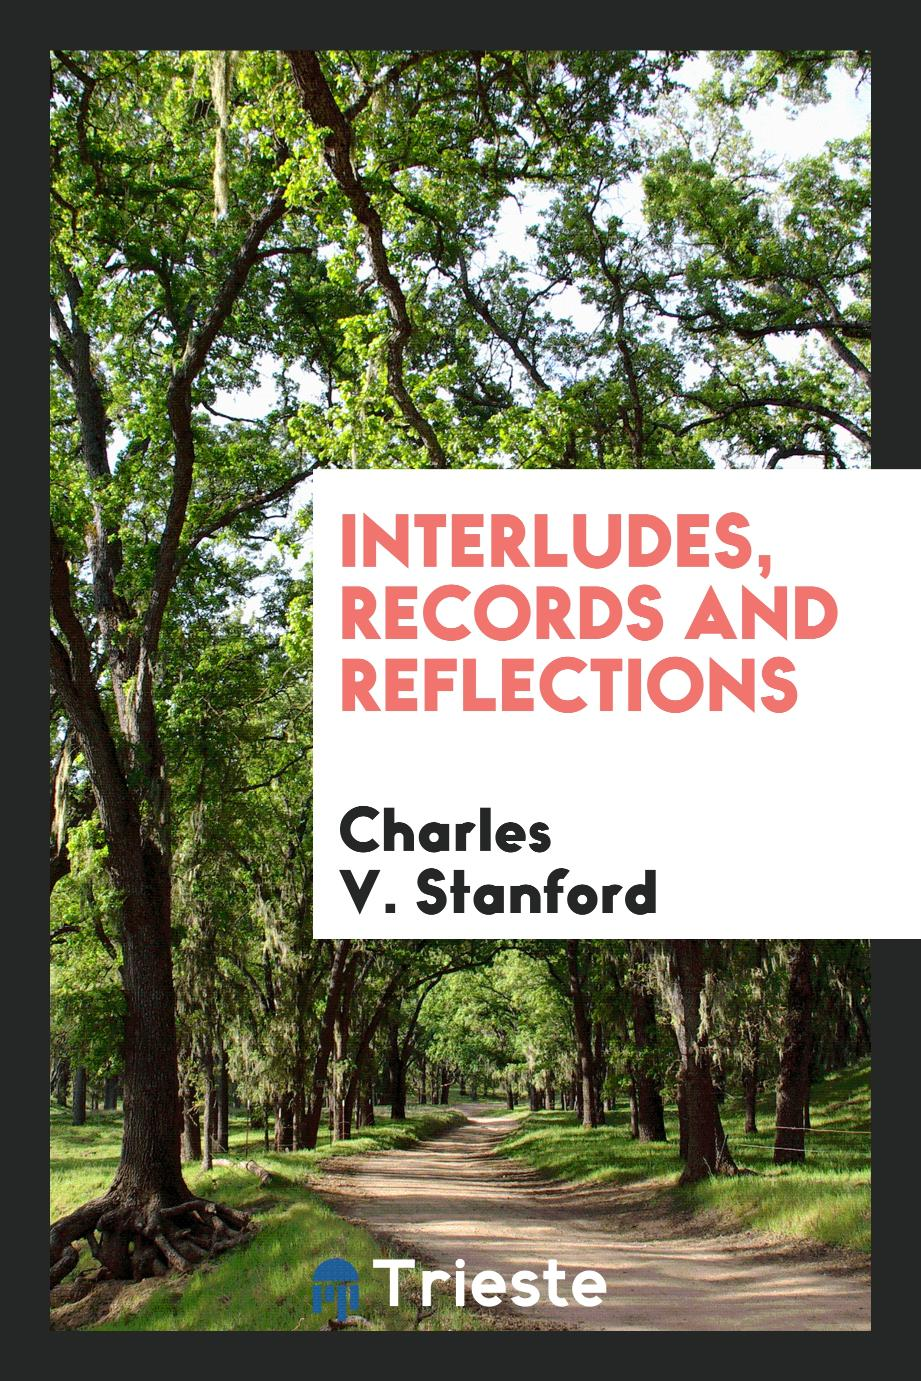 Interludes, Records and Reflections